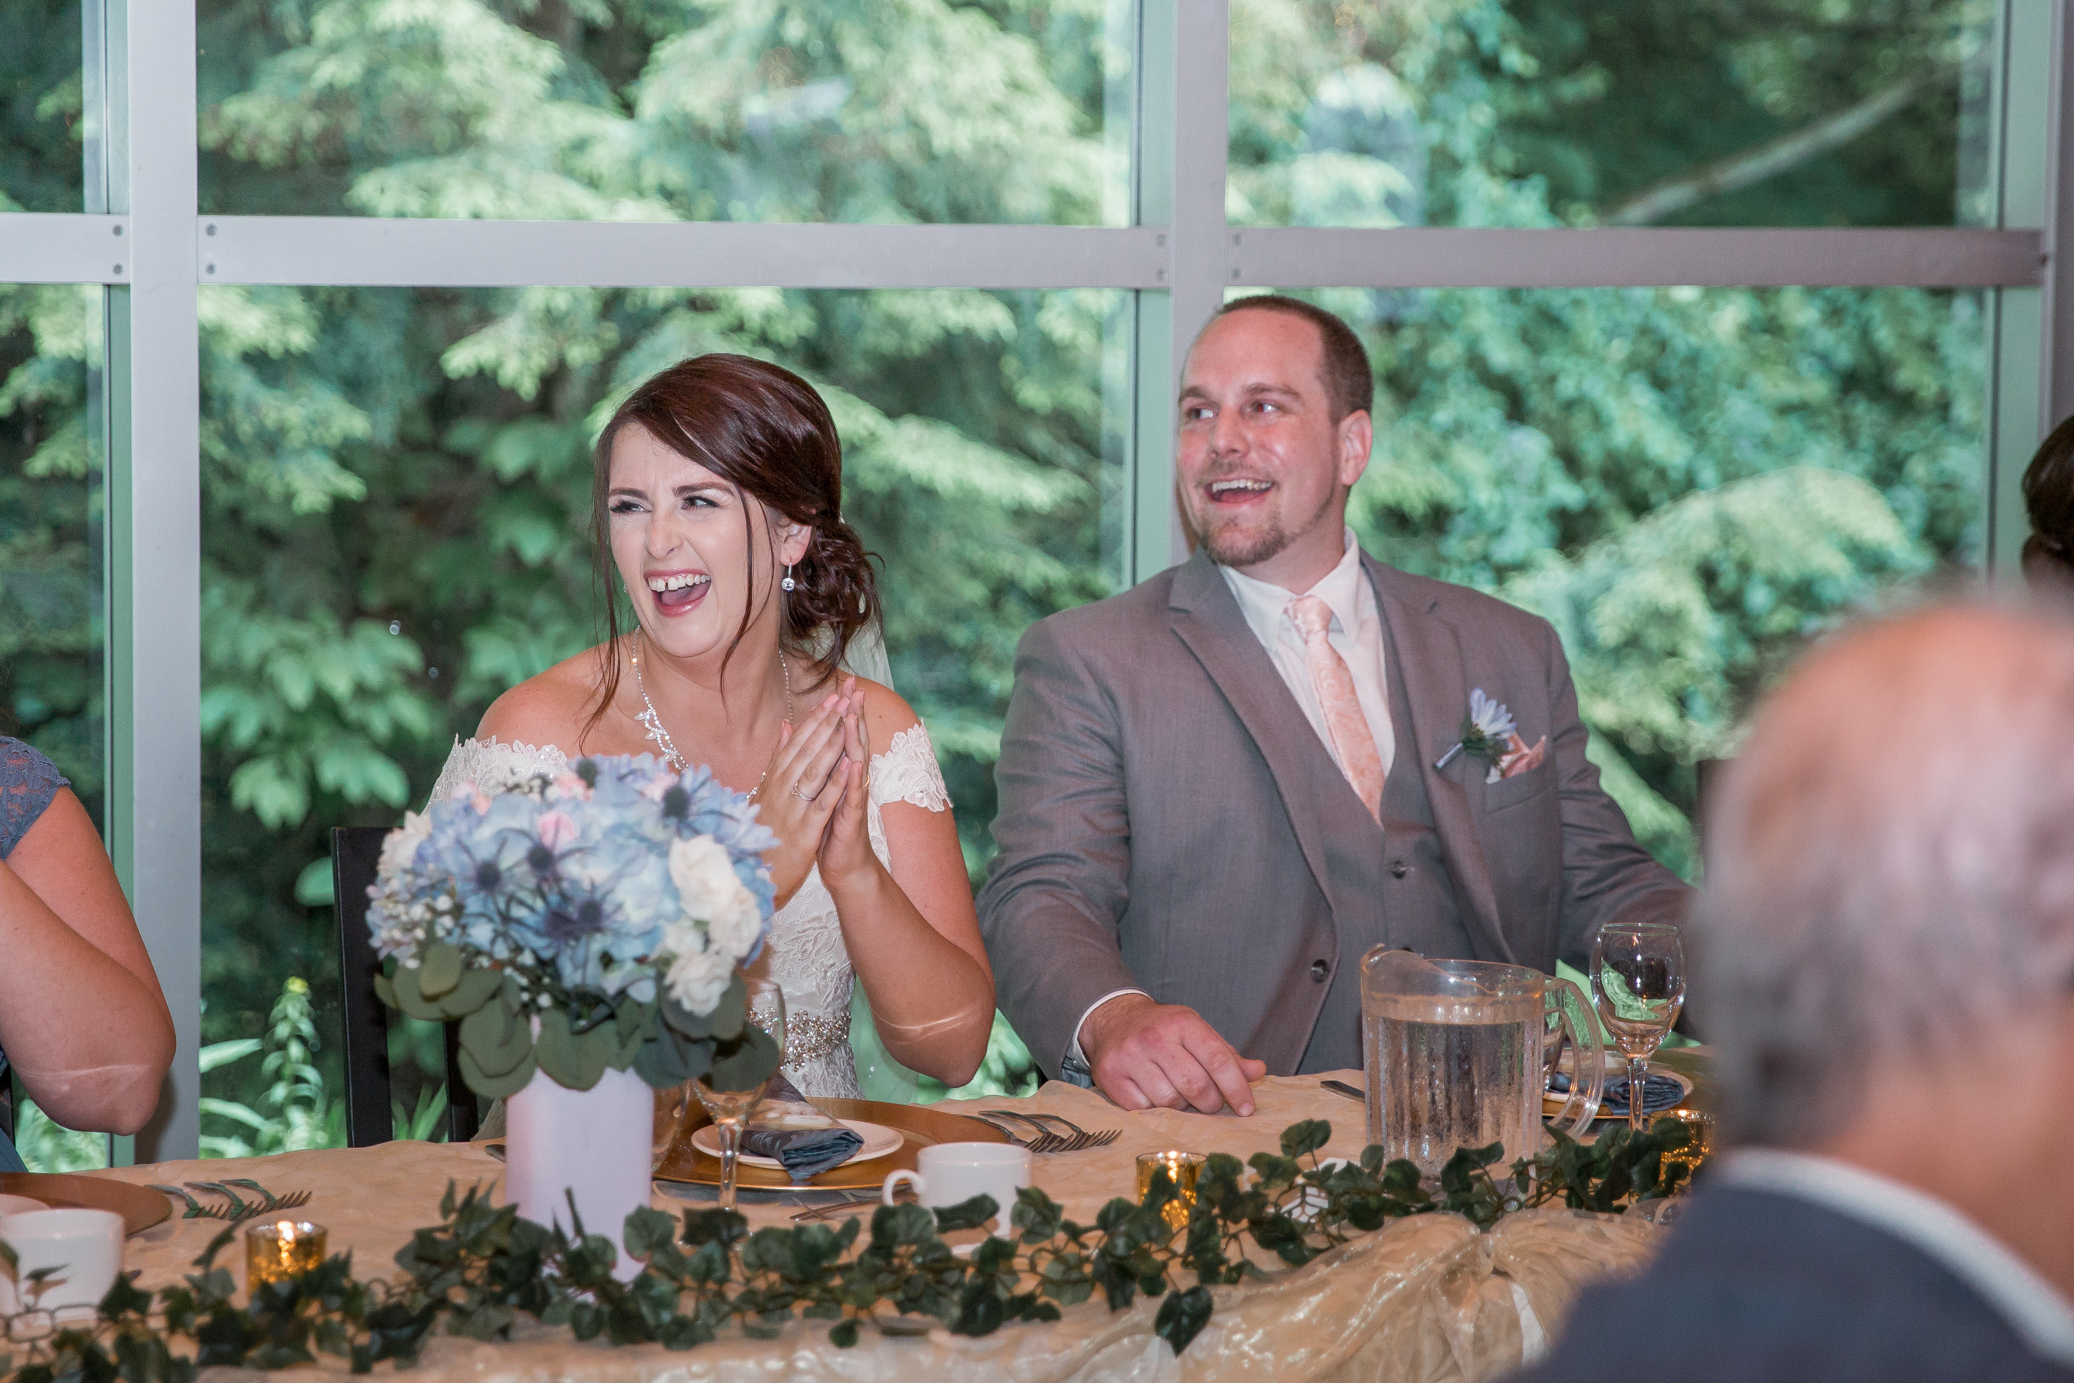 Pheasant_Run_Summer_Wedding_0037